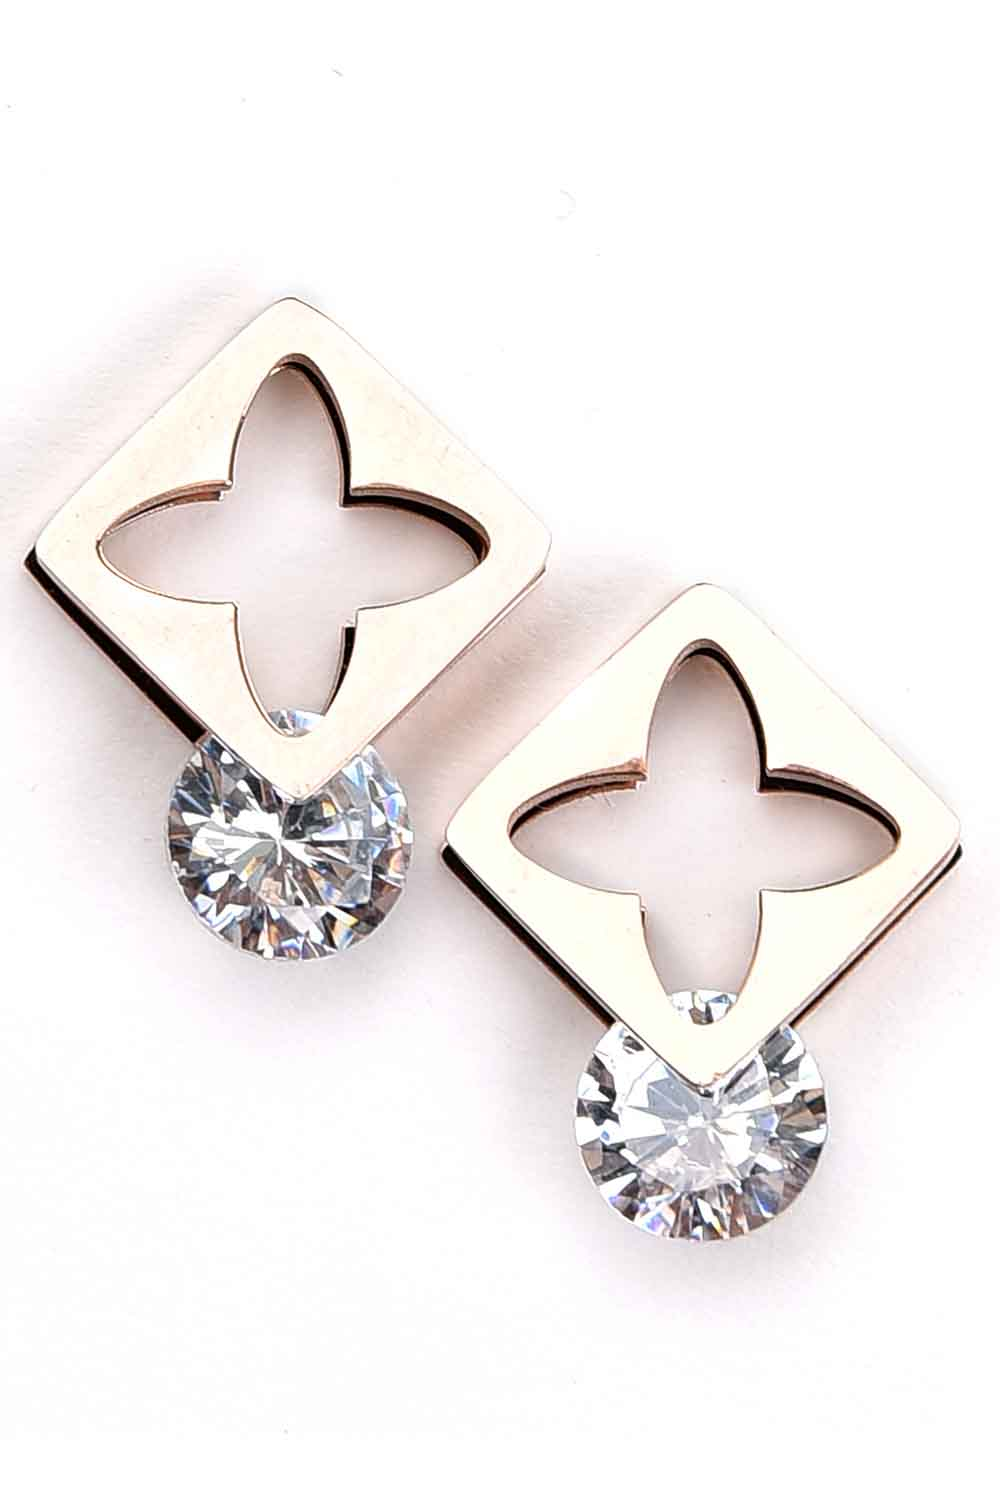 MIZALLE Square Steel Earrings (St) (1)